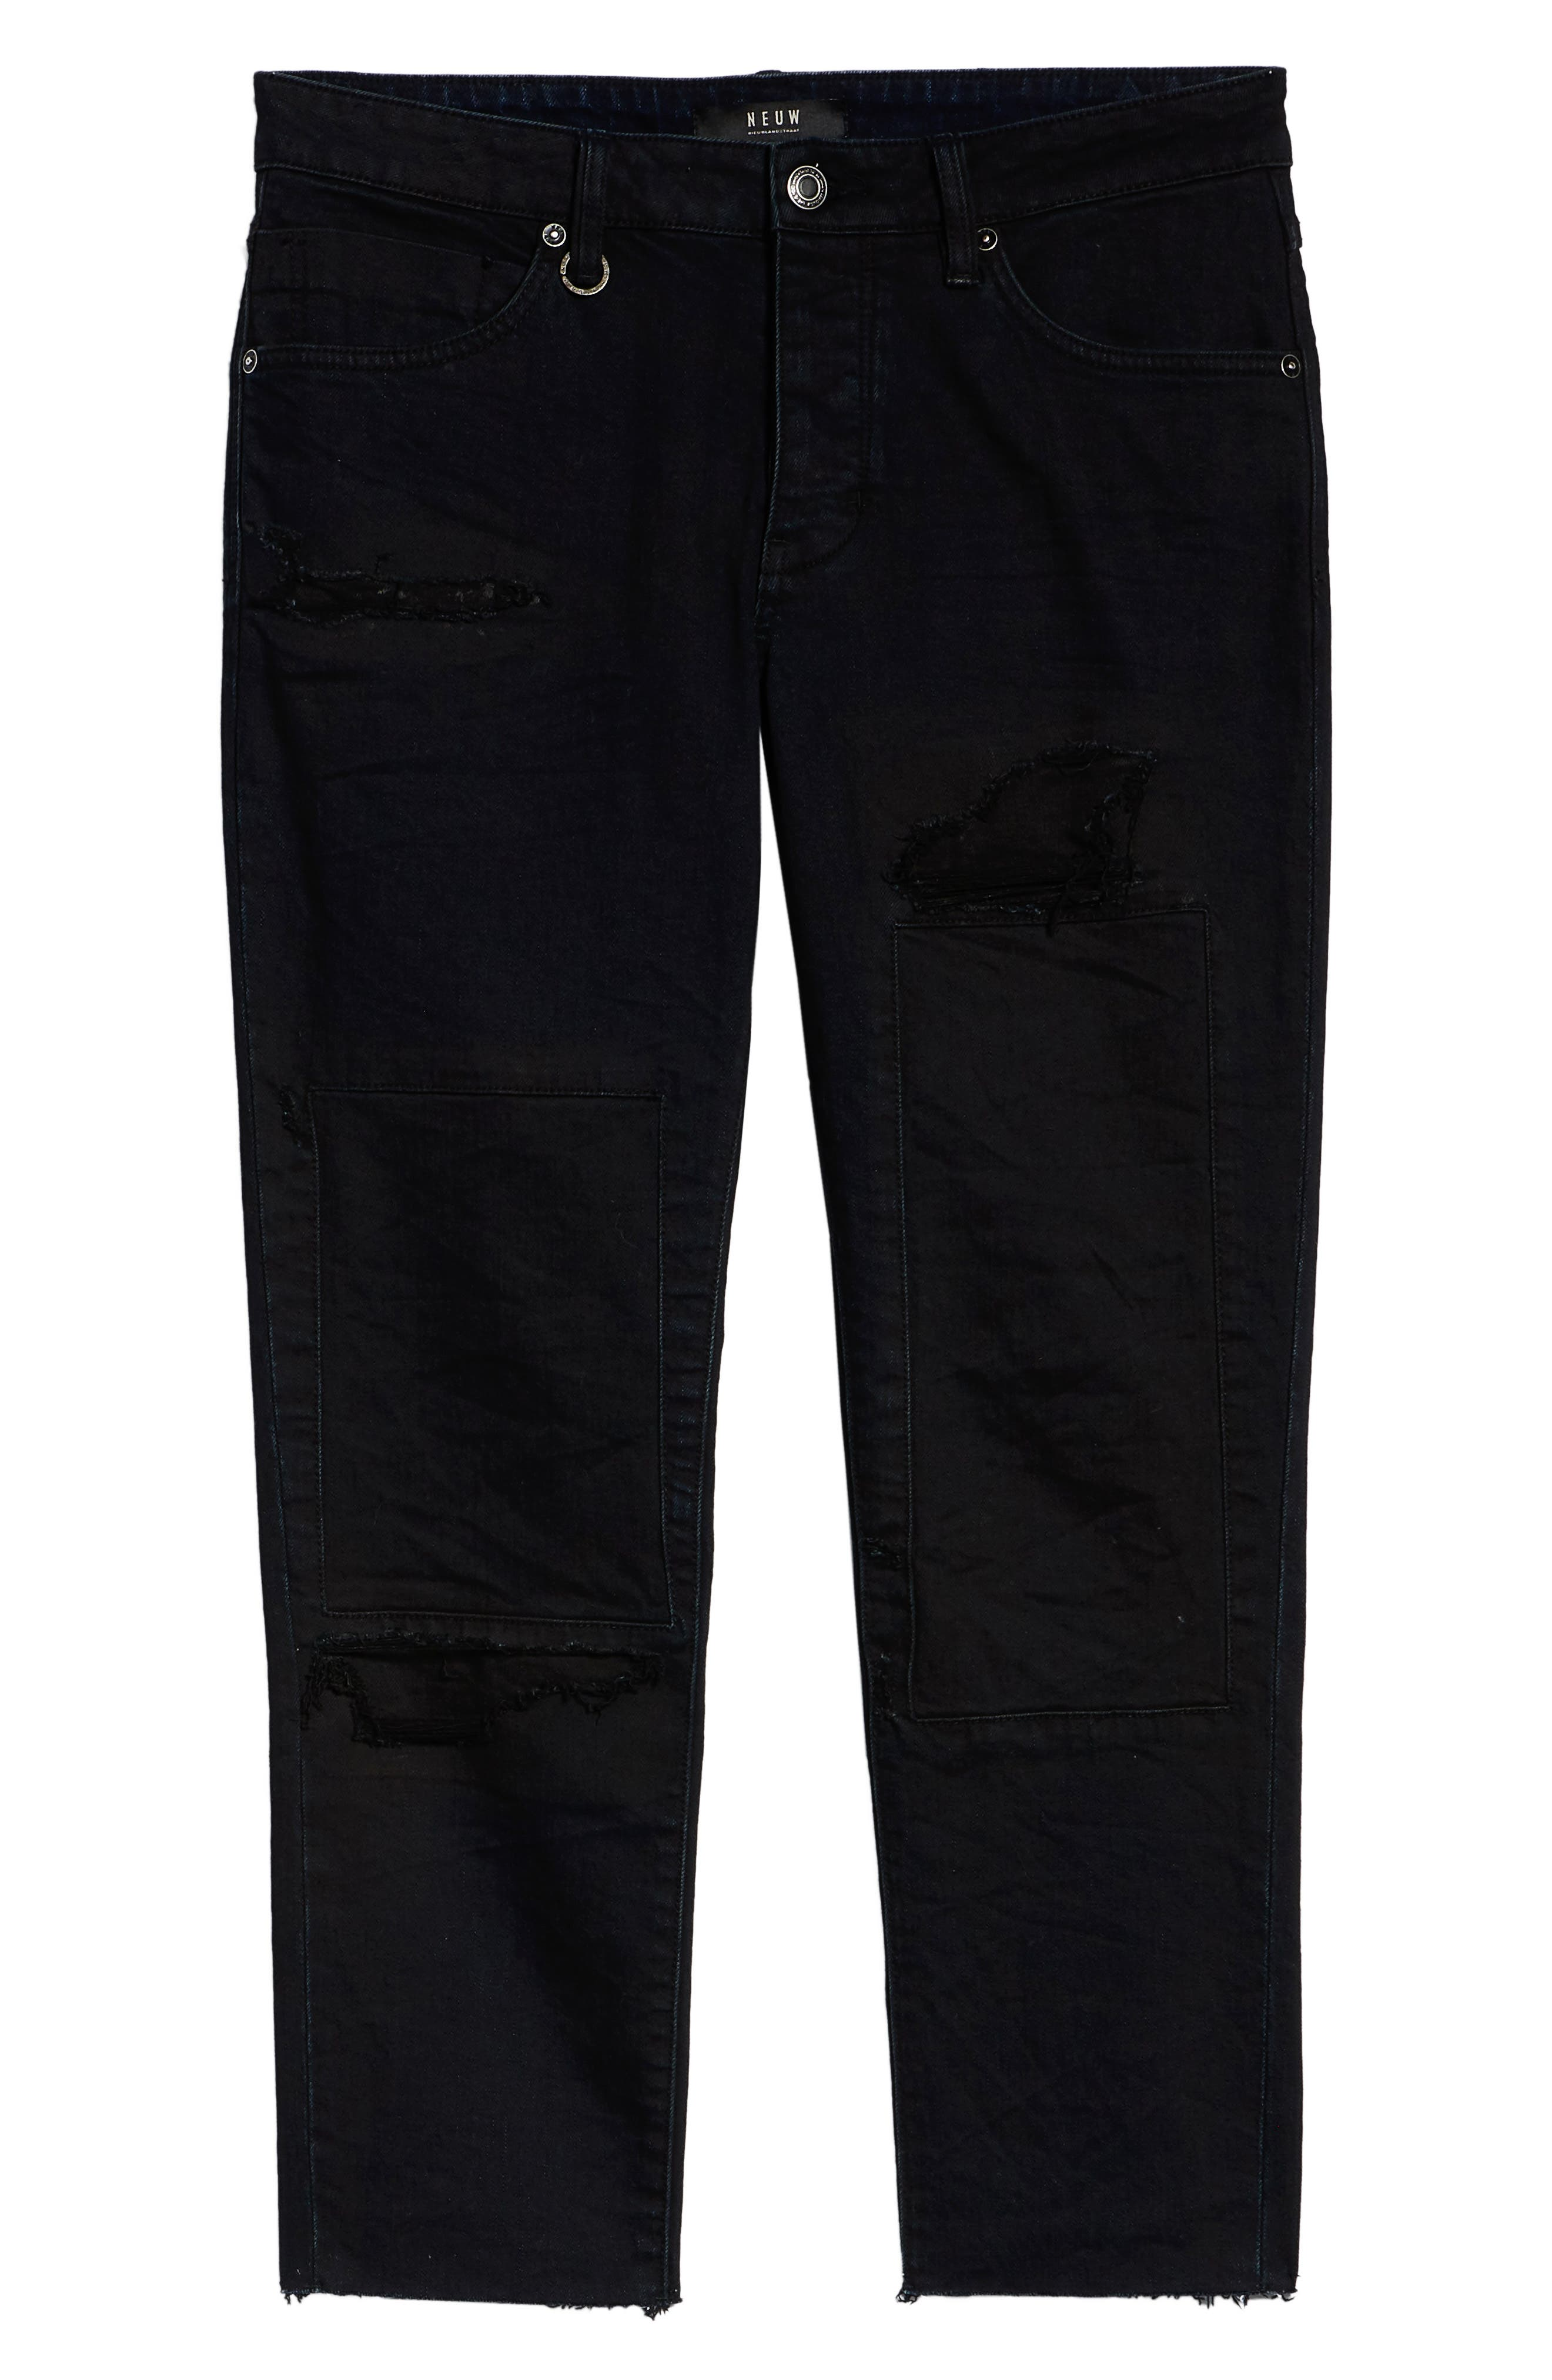 Lou Distressed Skinny Fit Jeans,                             Alternate thumbnail 6, color,                             COALITION